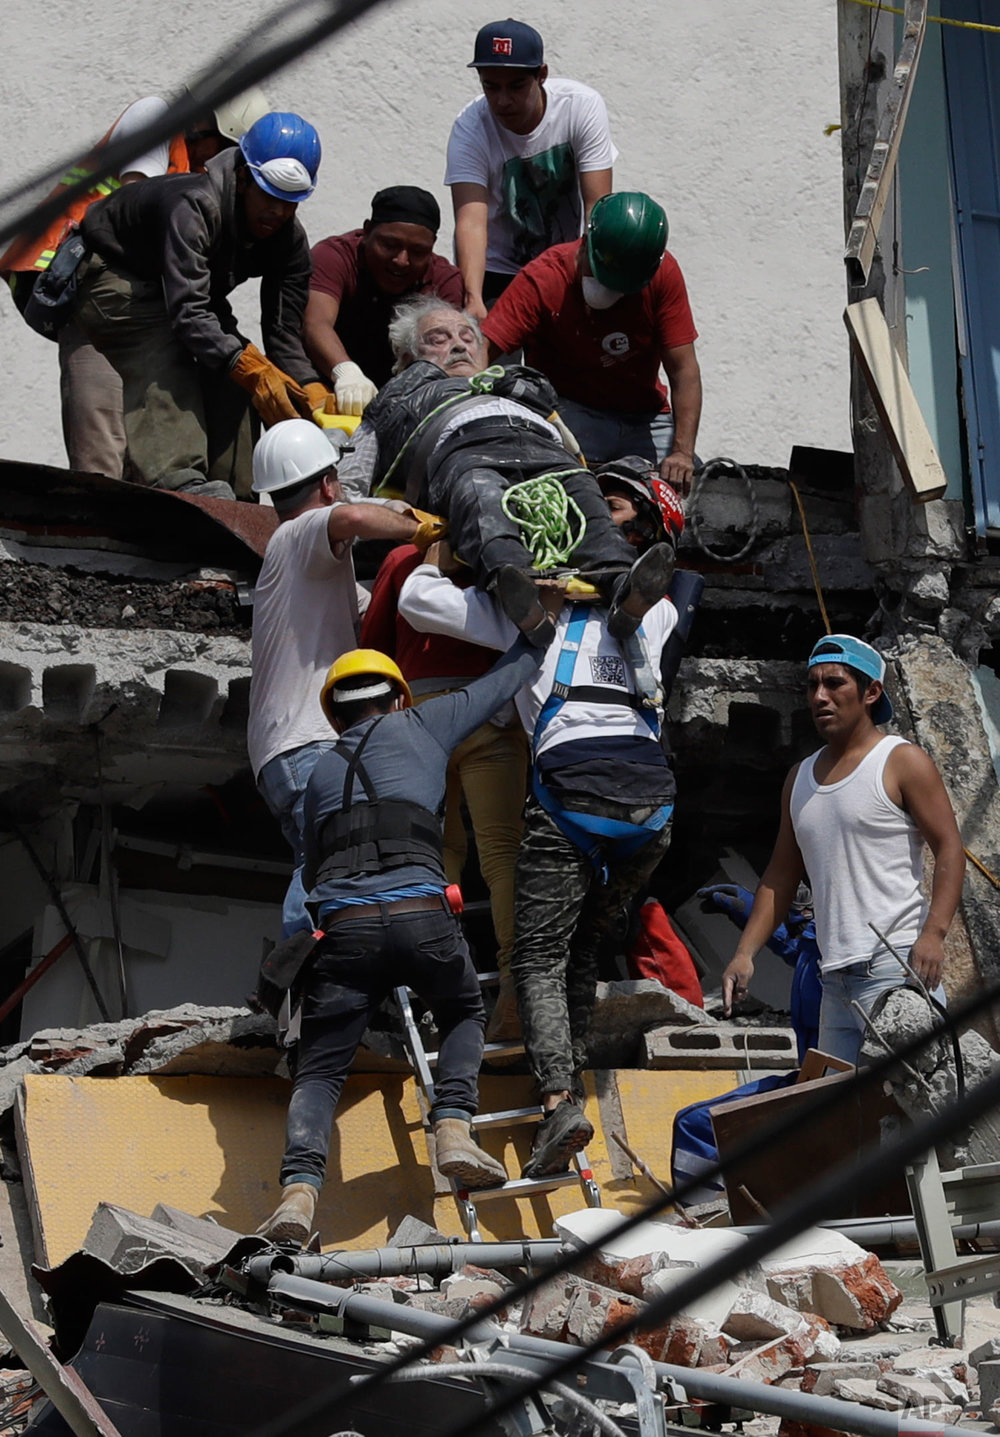 An injured man is pulled out of a building that collapsed during an earthquake in the Roma Norte neighborhood of Mexico City, Tuesday, Sept. 19, 2017. (AP Photo/Rebecca Blackwell)